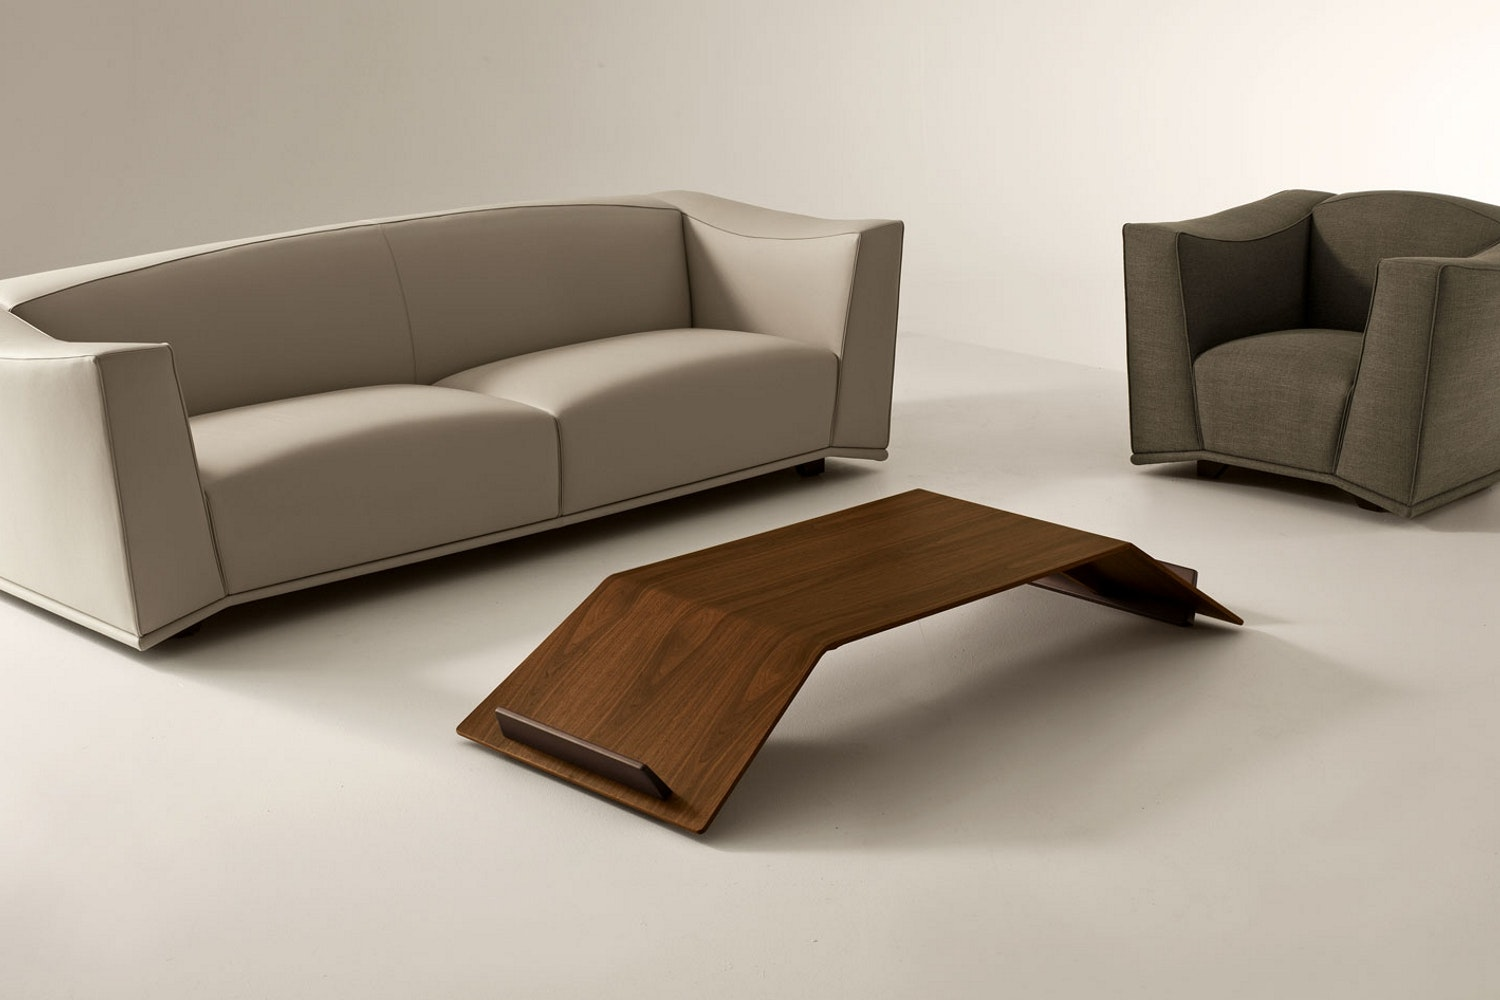 Up-Date Coffee Table by Andrei Munteanu for Giorgetti